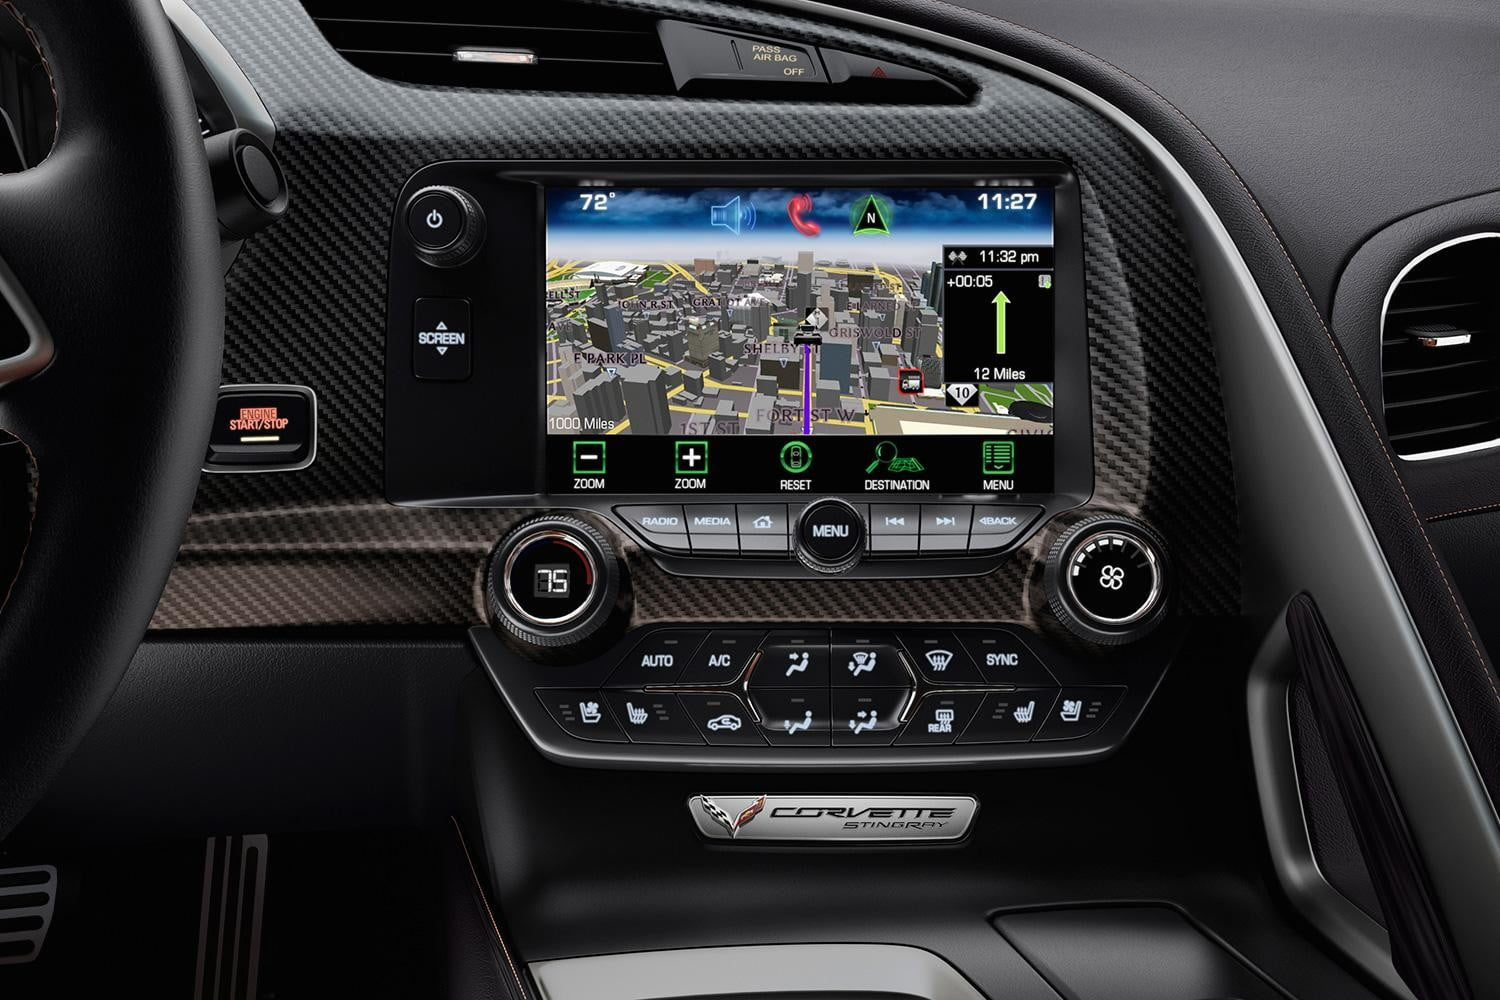 2014 Chevrolet Corvette interior tech